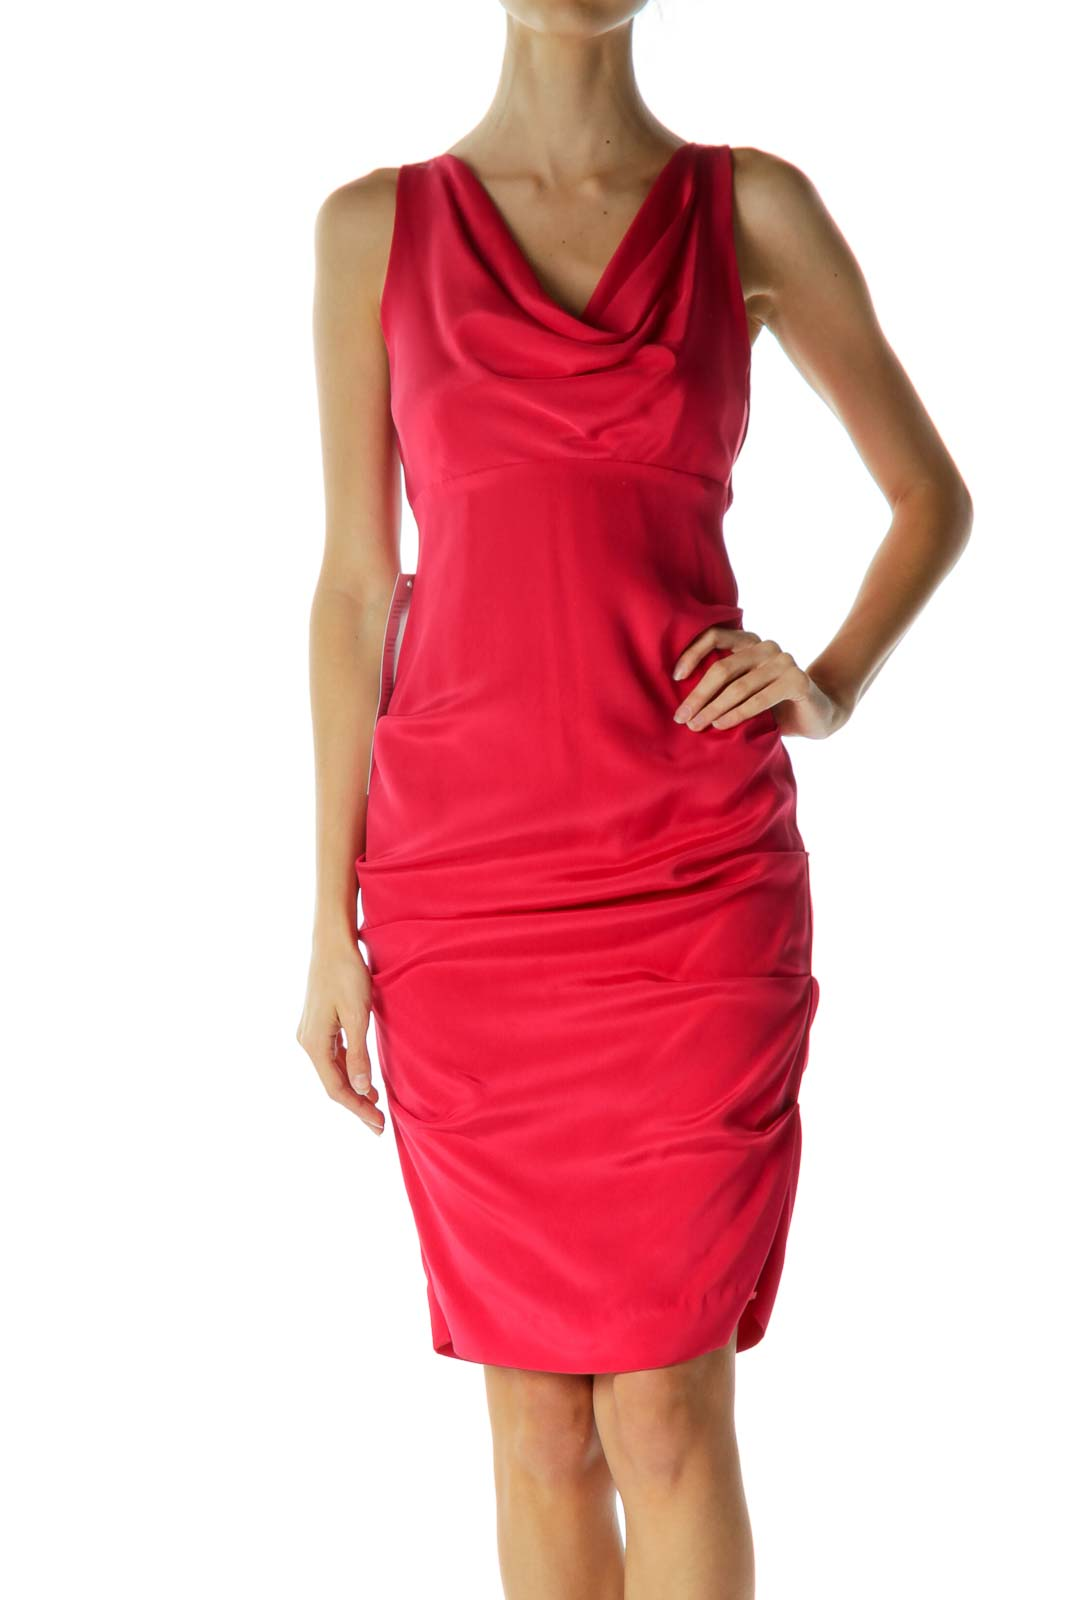 0ed484ab646 Shop Pink Empire Waist Ruched Silk Dress clothing and handbags at SilkRoll.  Trade with us!